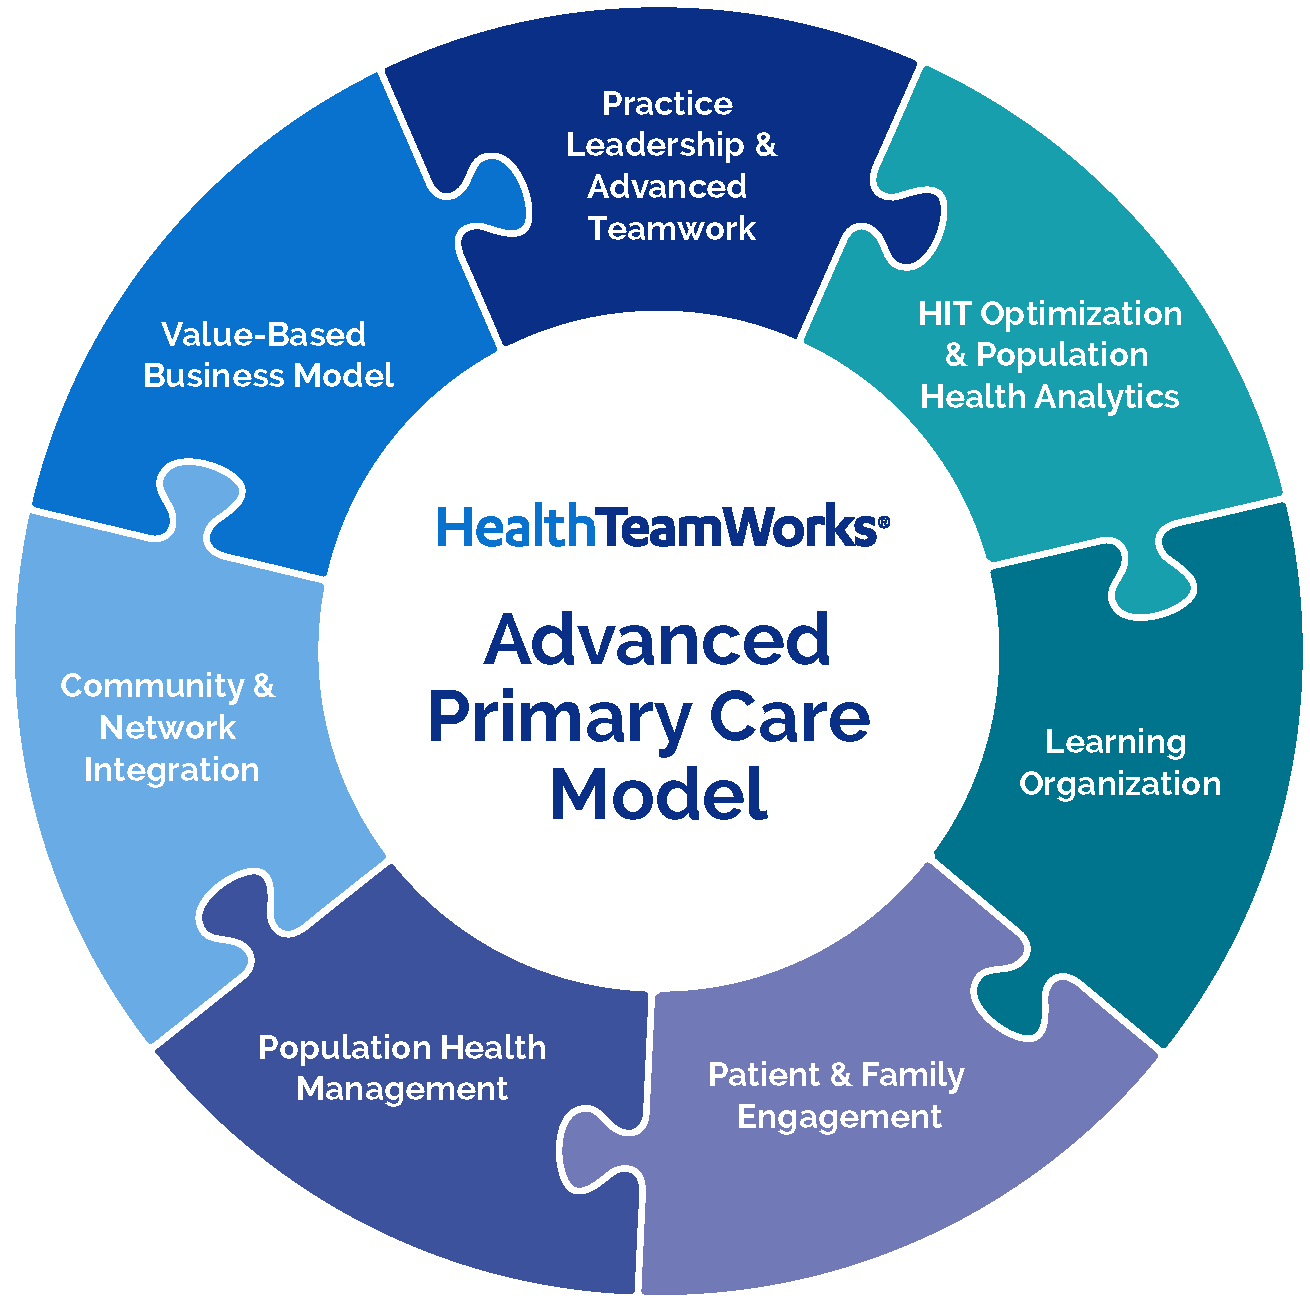 HealthTeamWorks Advanced Primary Care Model